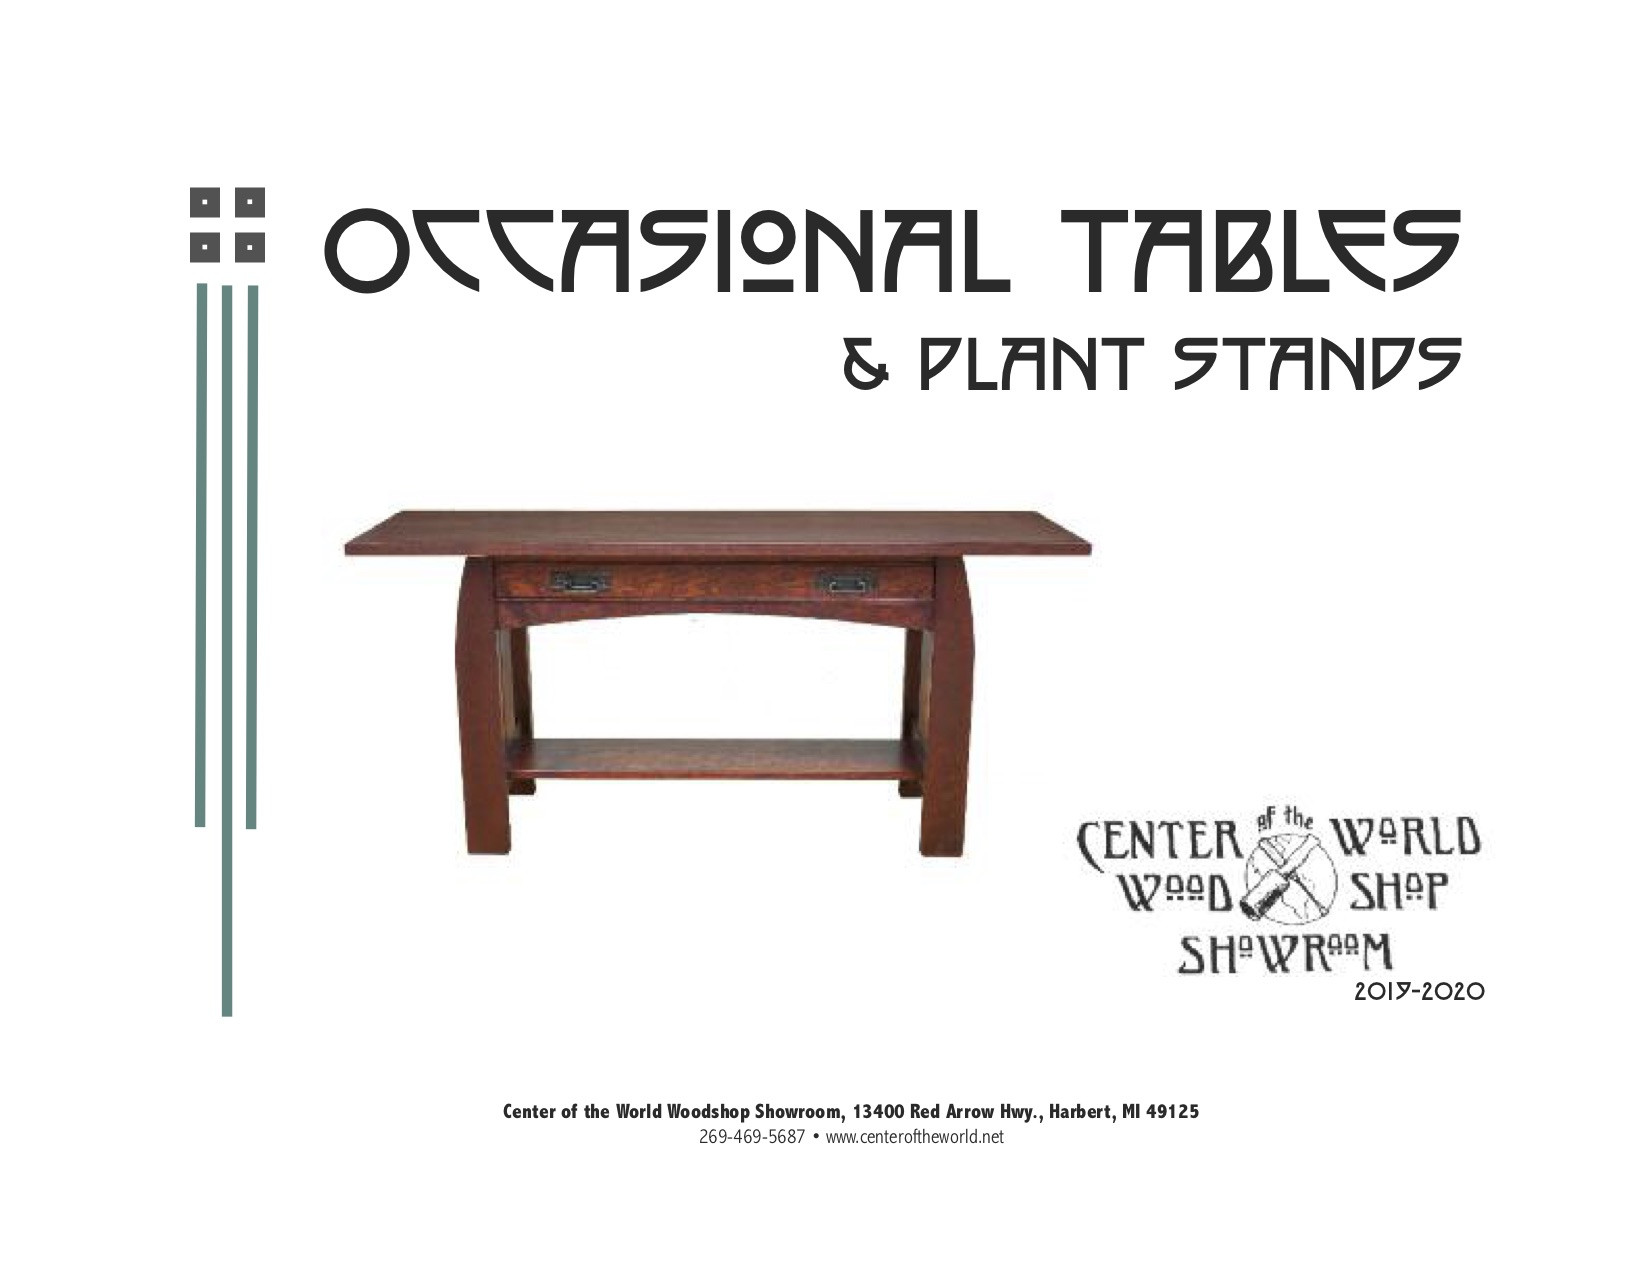 Occasional Table Catalog Cover 2019